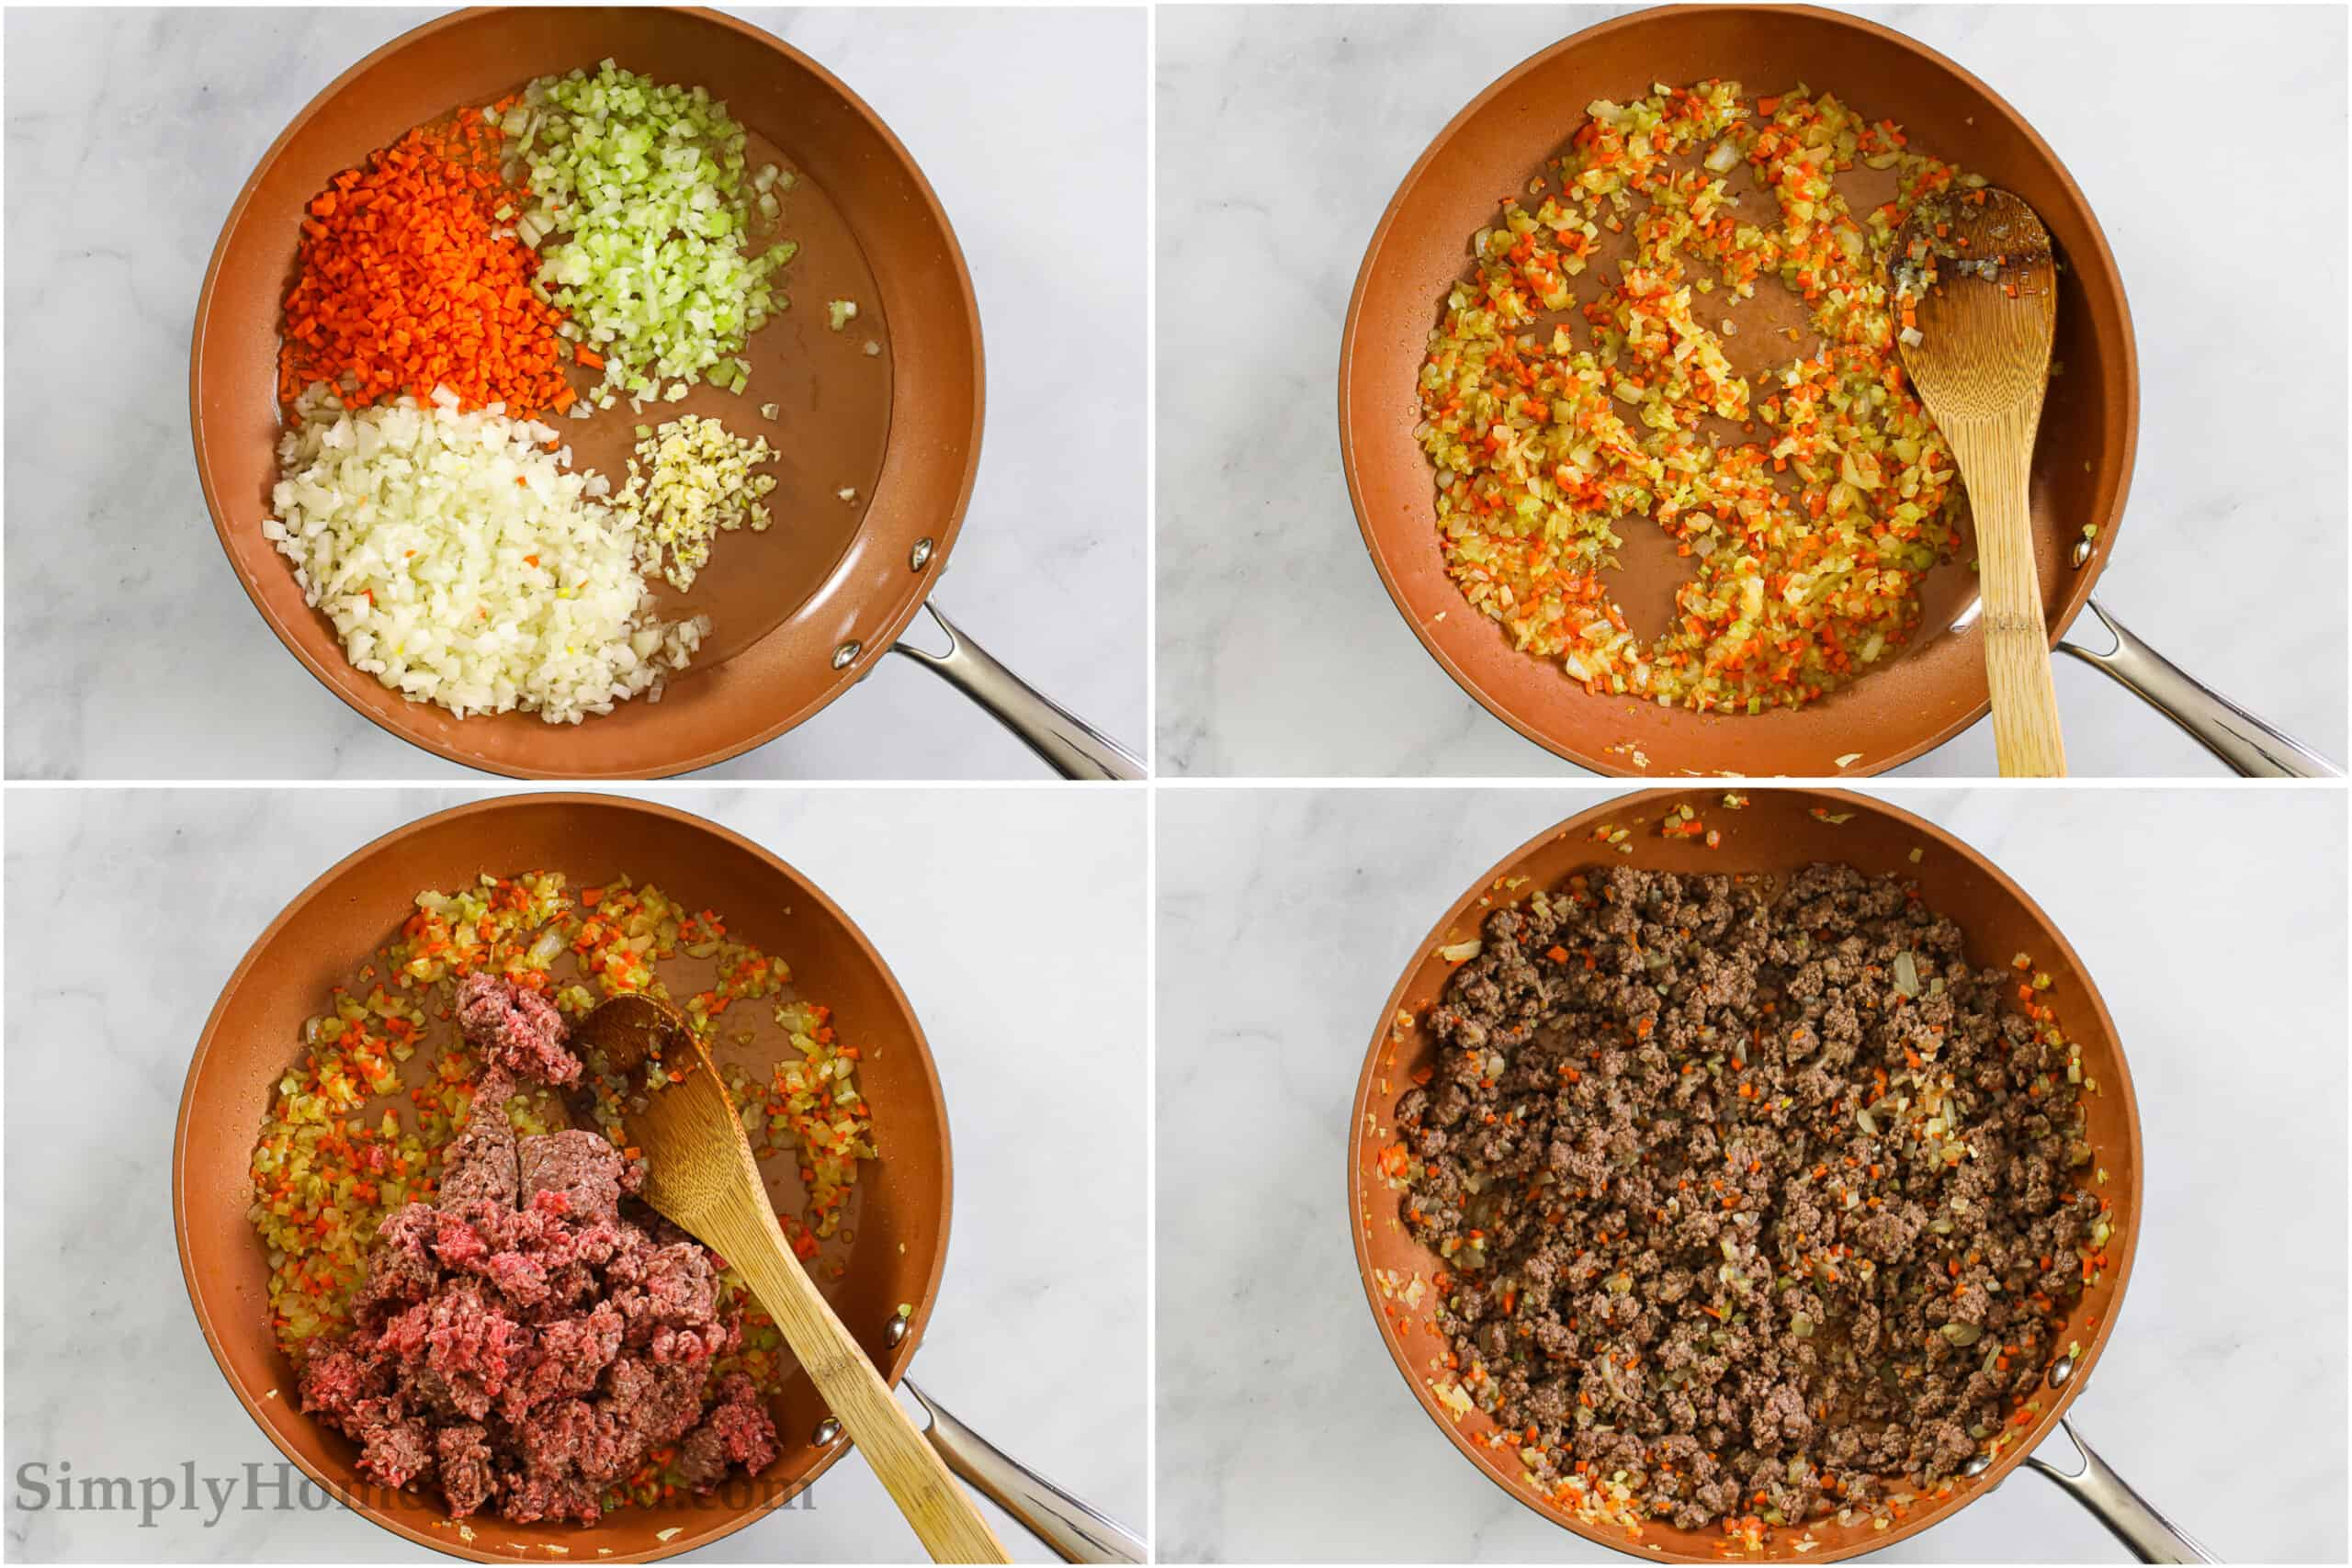 Steps to make Rigatoni Bolognese, including cooking the vegetables, then adding the ground beef, and stirring until it's browned.